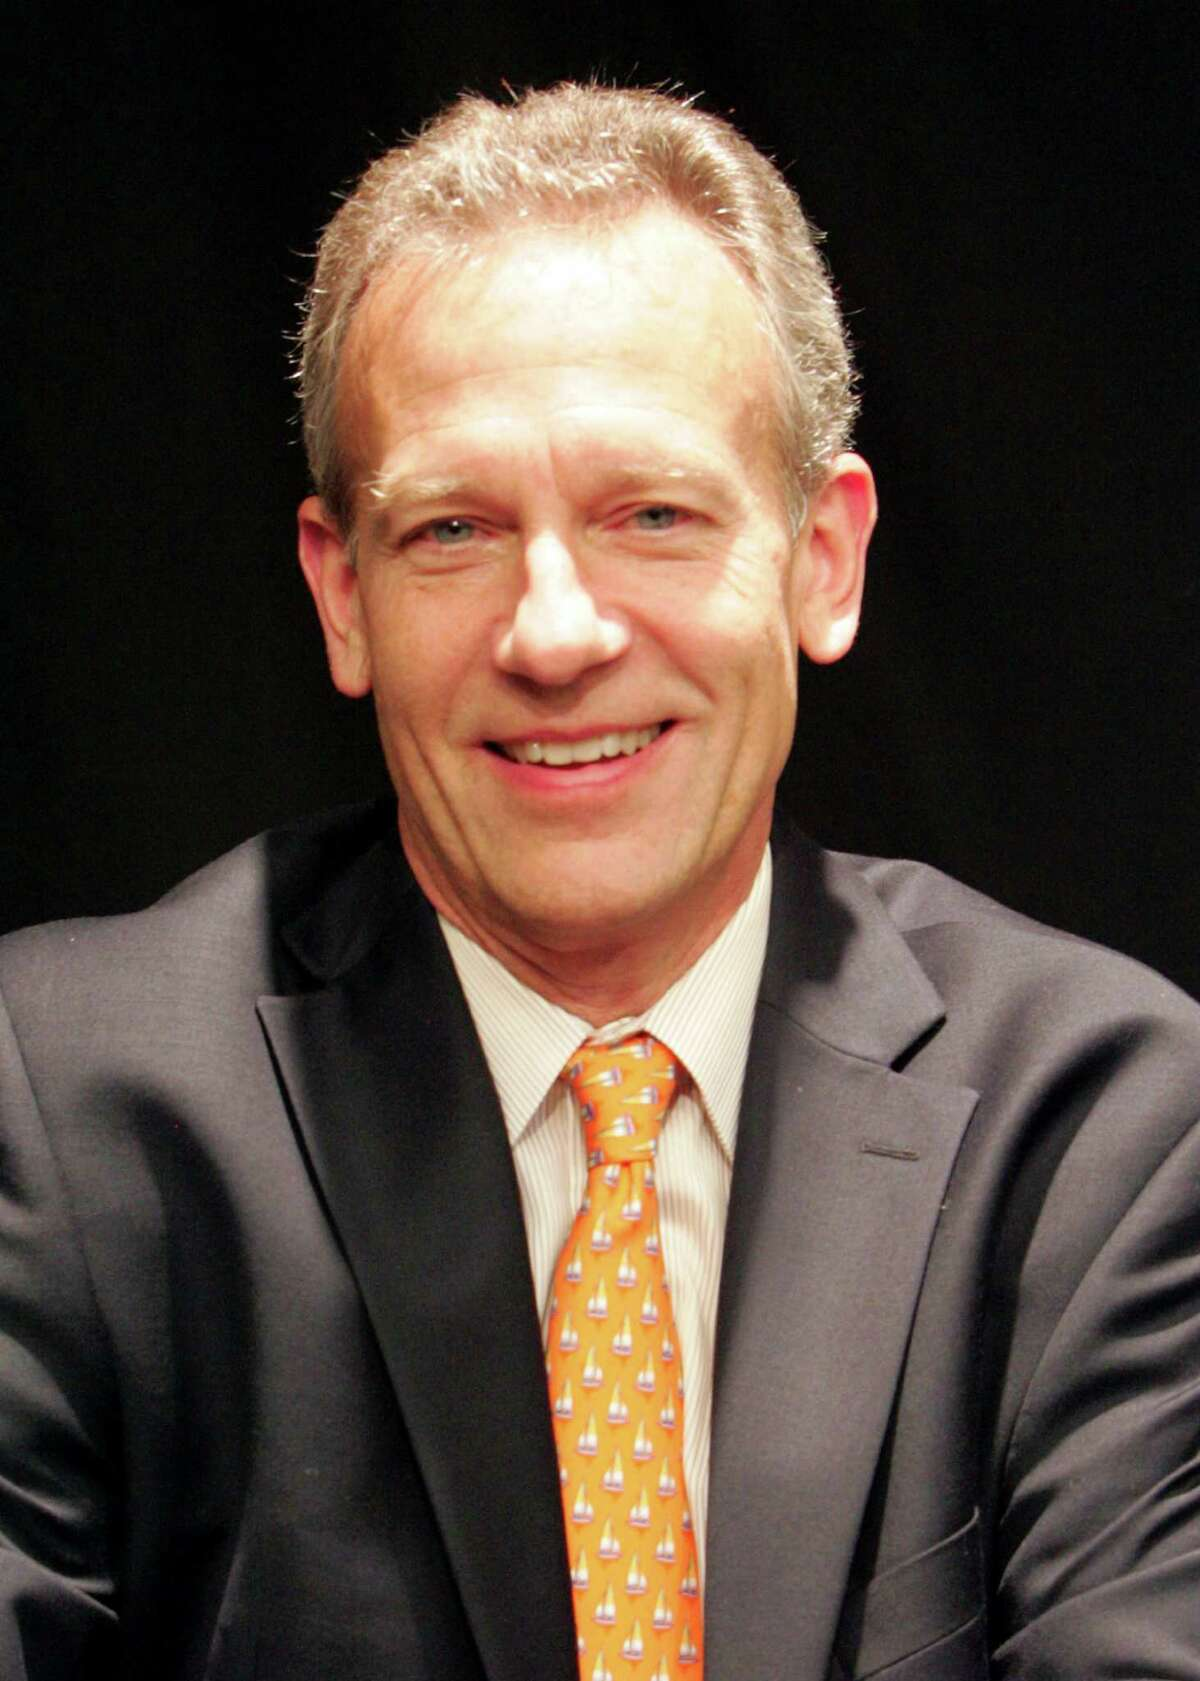 Andy George, a member-elect of the Stamford Board of Education, is due to be sworn in on Tuesday, Dec. 1.